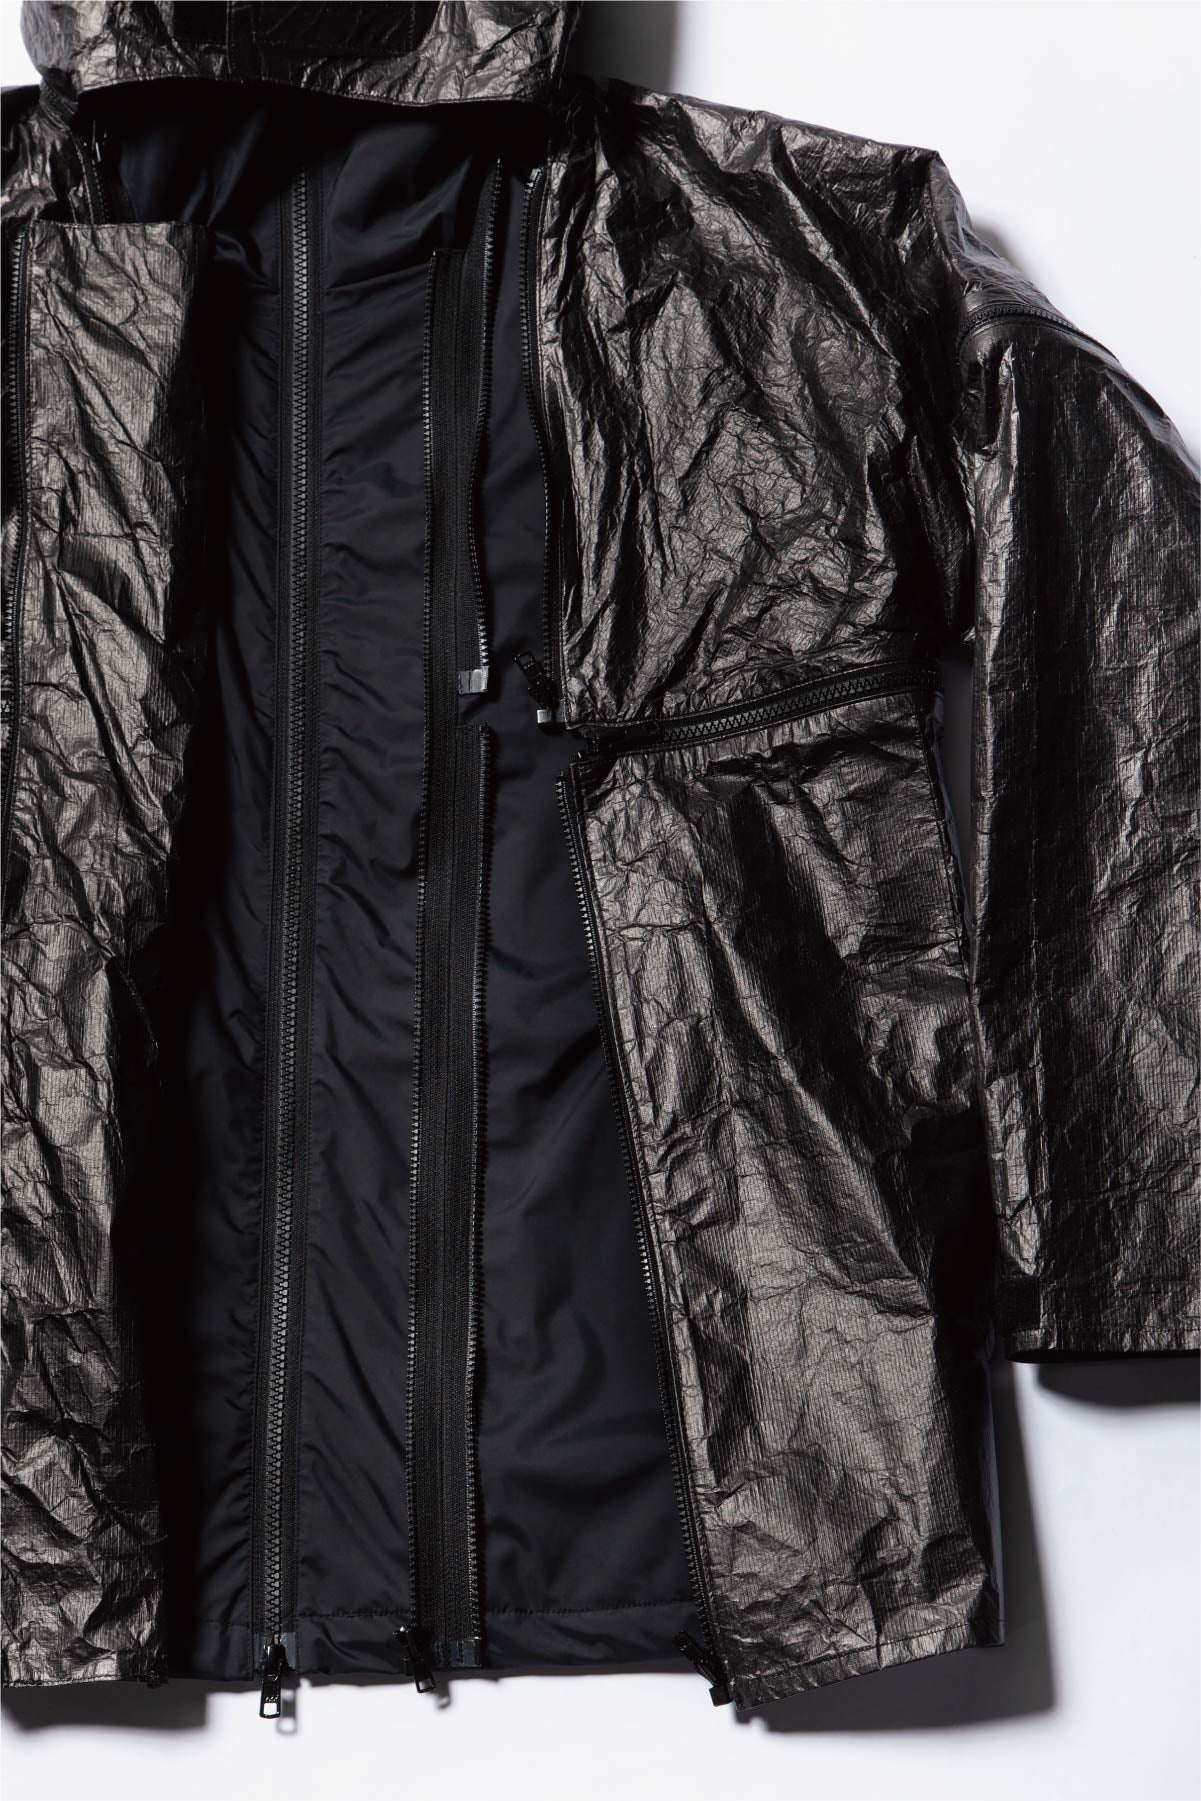 Shell jacket + Black tyvek parts Set